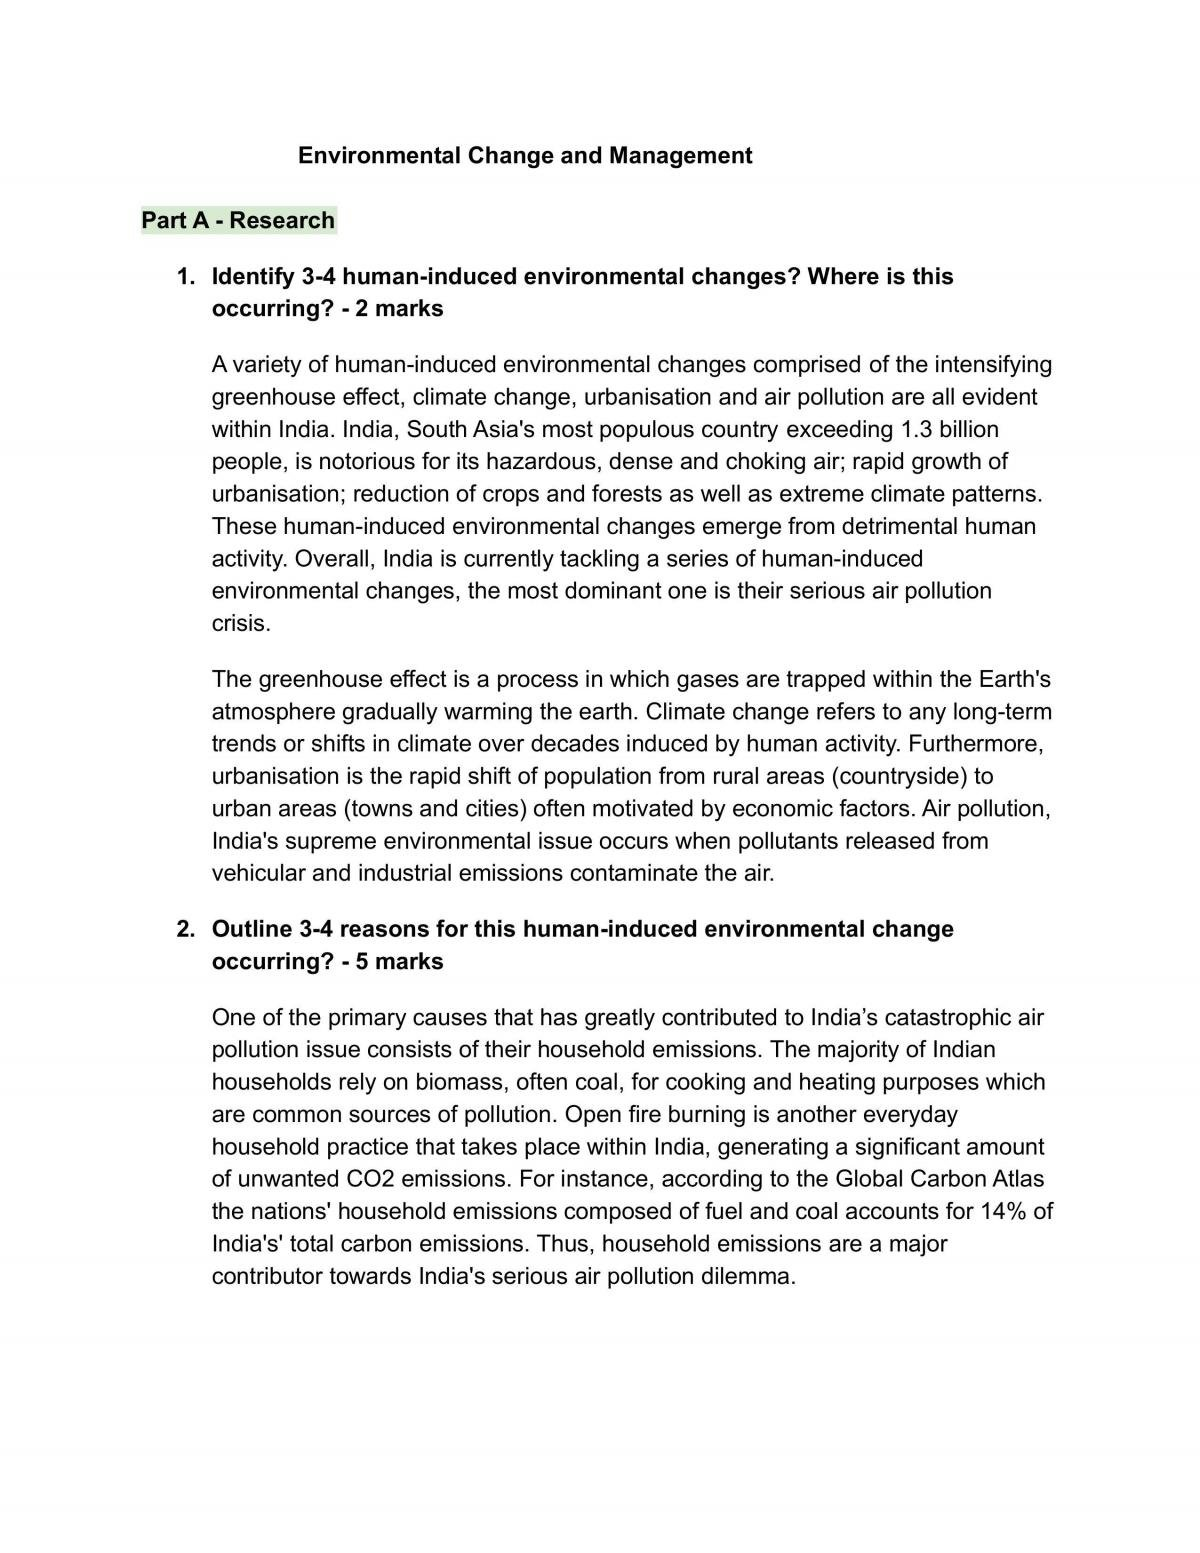 Environmental Change and Management - Page 1